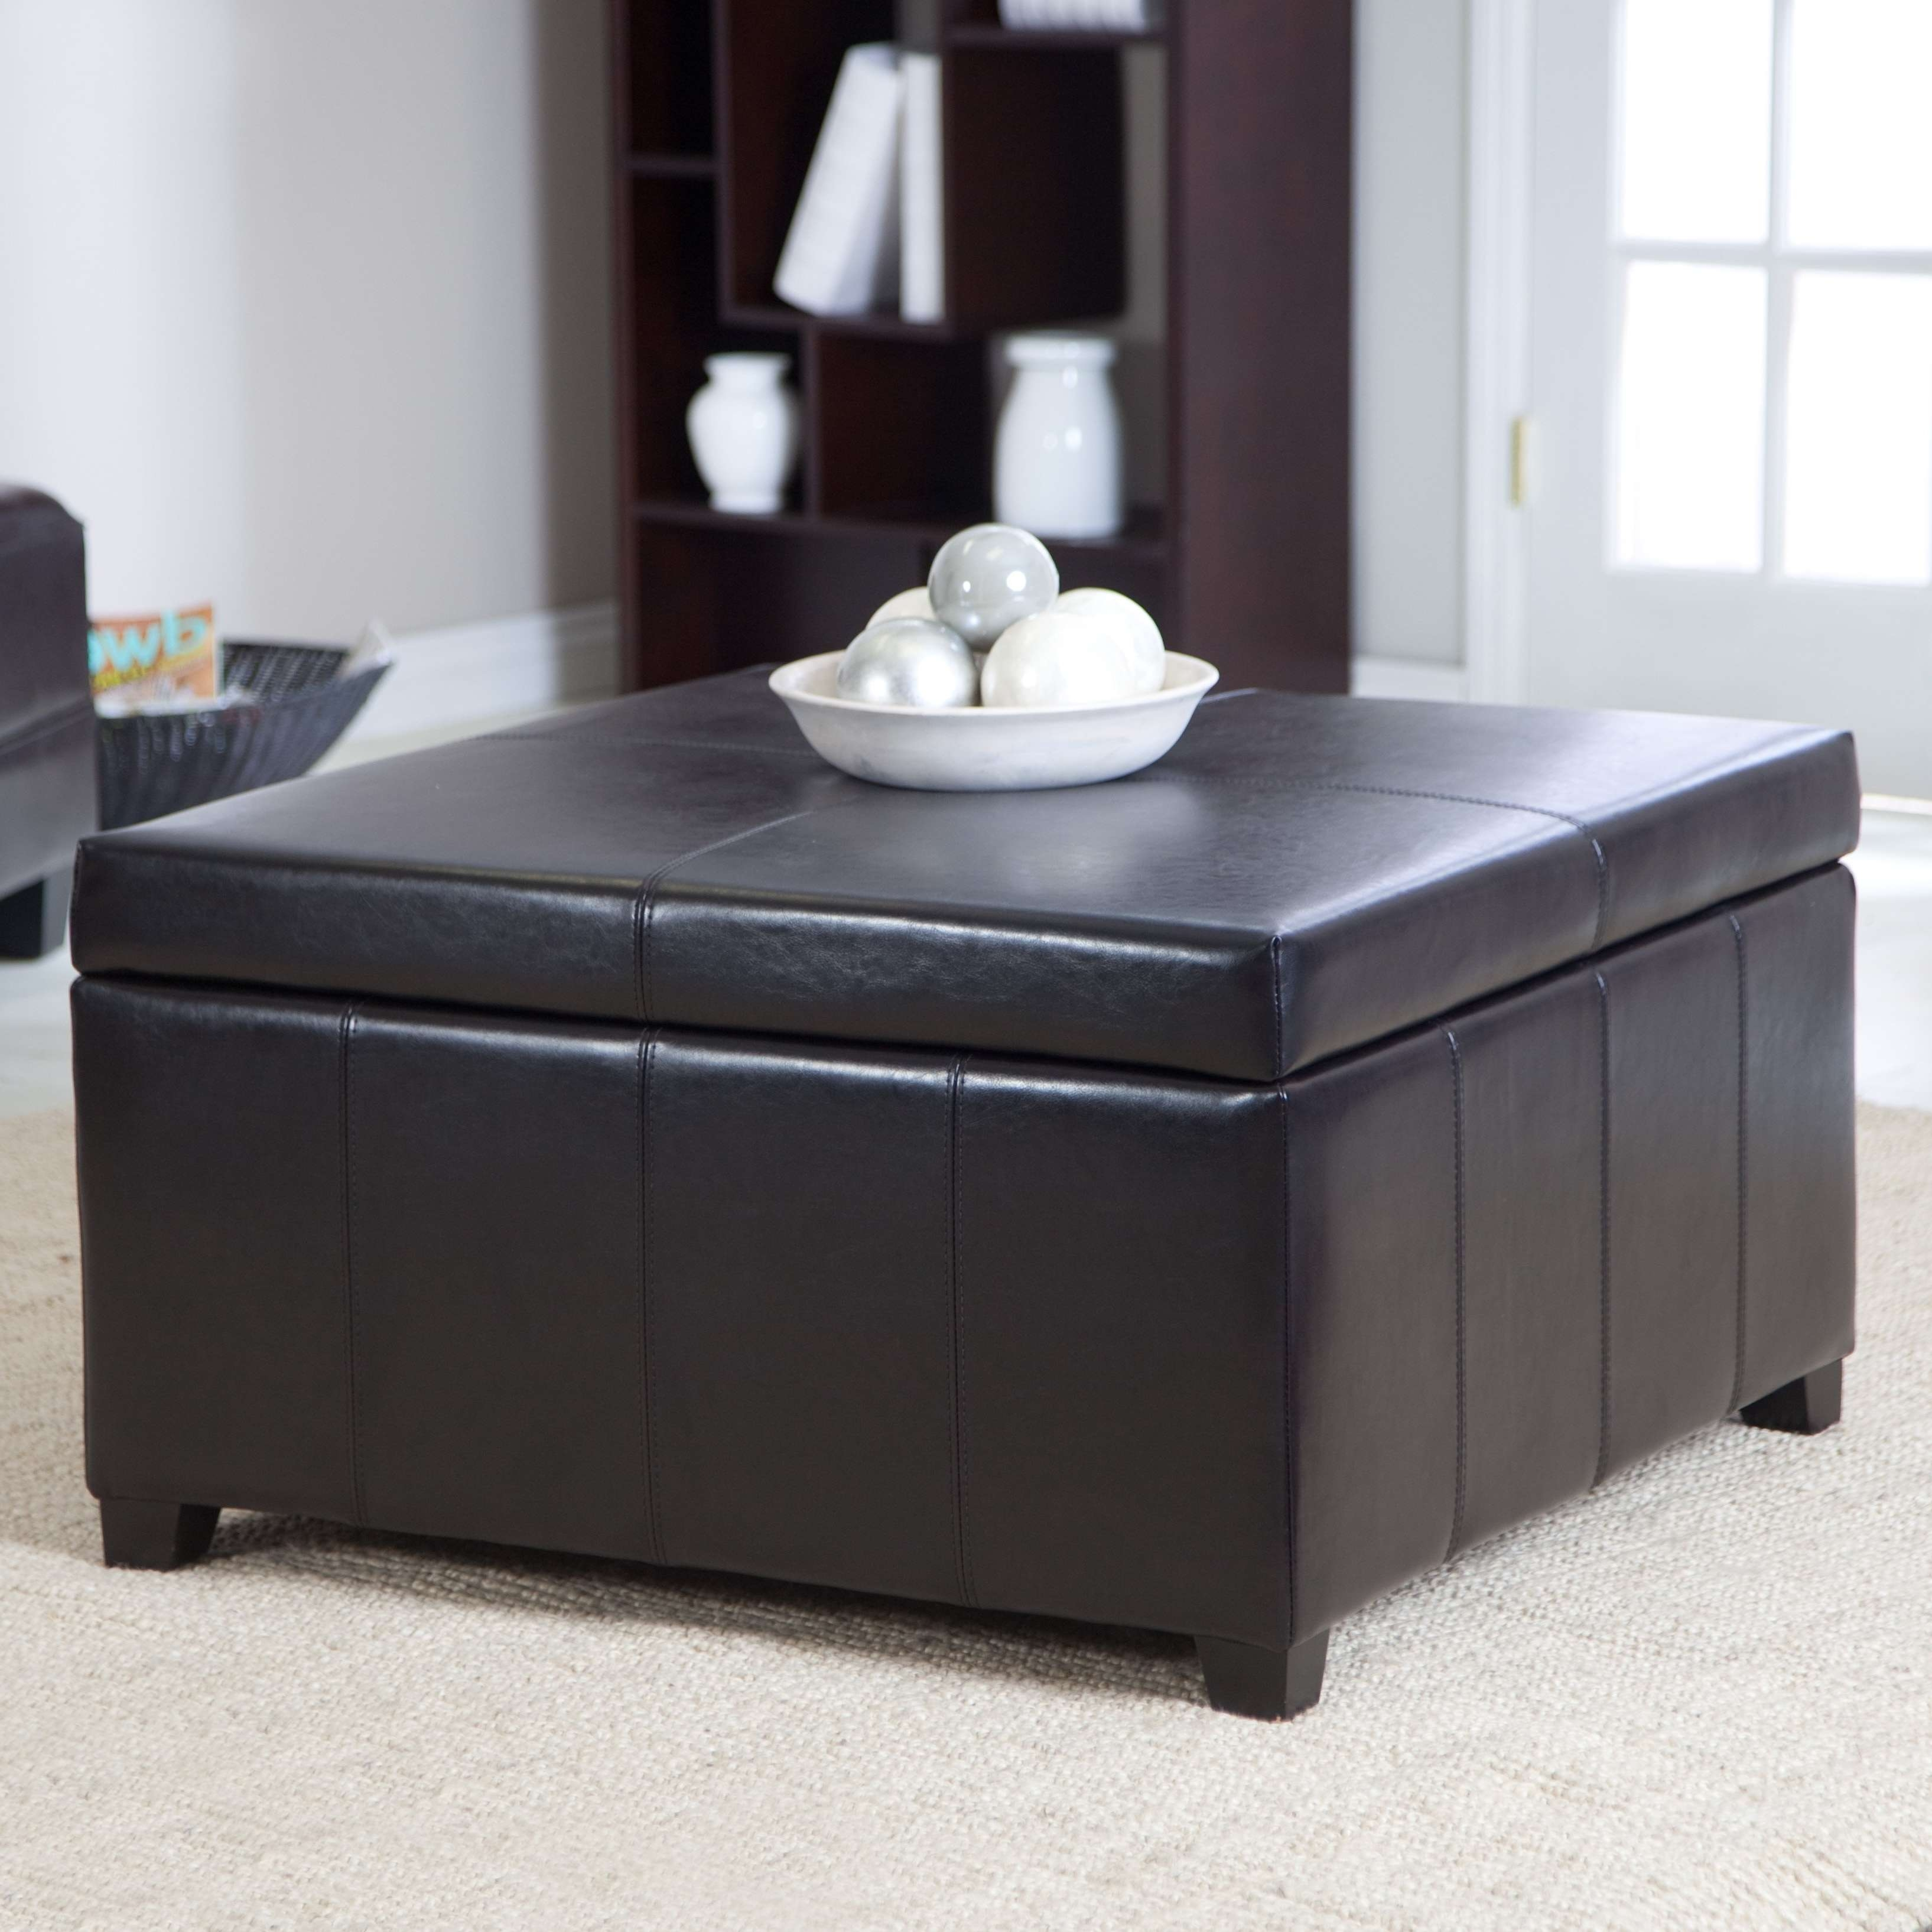 Most Current Brown Leather Ottoman Coffee Tables With Storages Regarding Cube Black Leather Ottoman With Storage Placed On The White Rug Of (View 12 of 20)